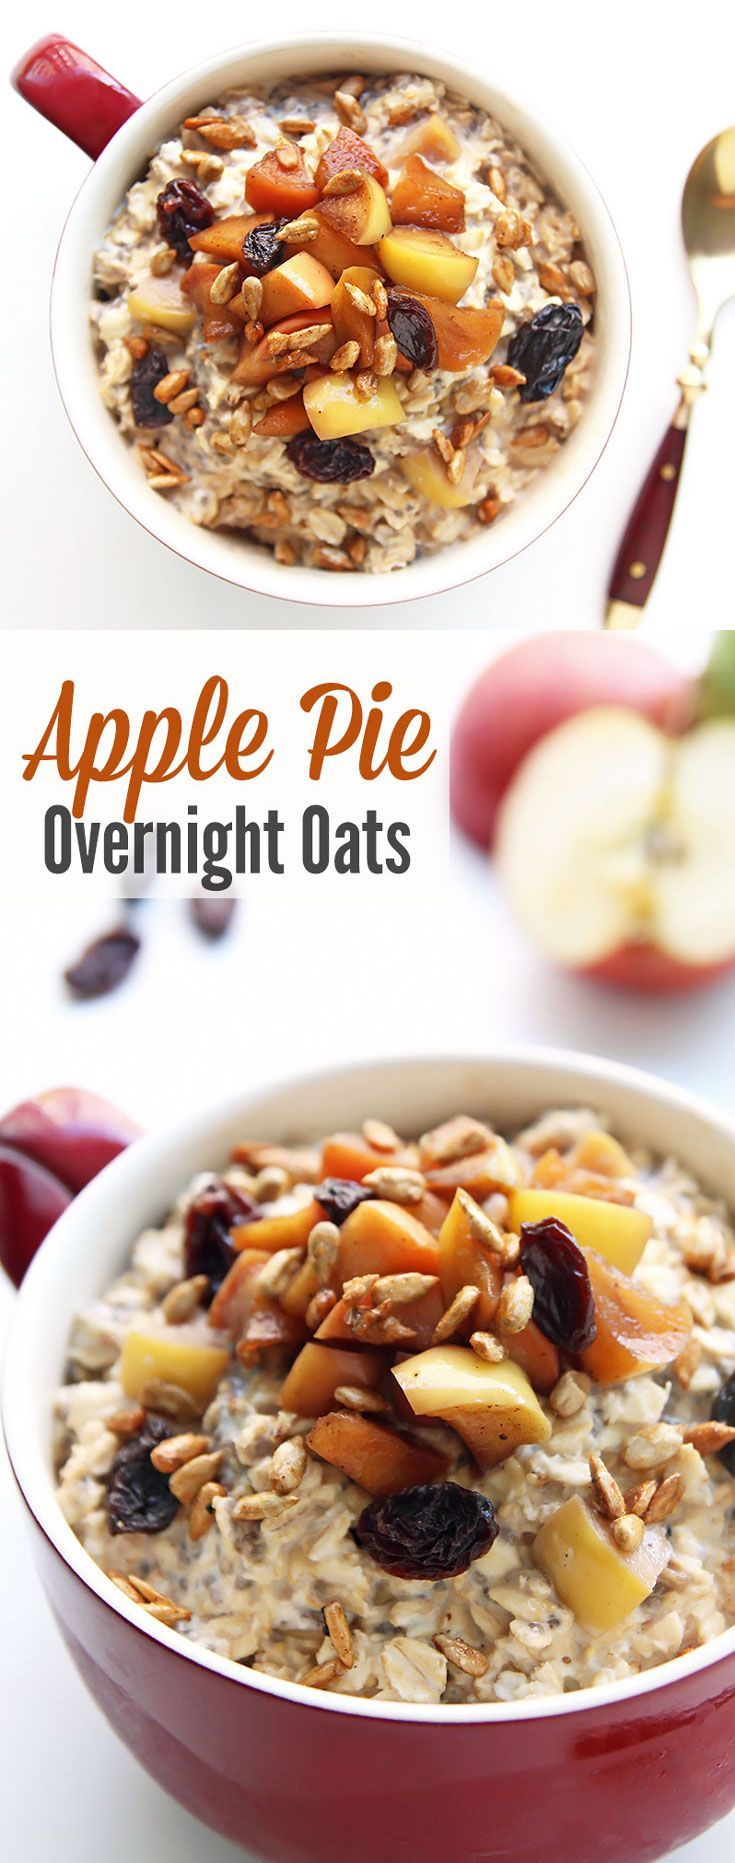 Apple Pie Overnight Oats - This healthy oatmeal is made overnight in ...